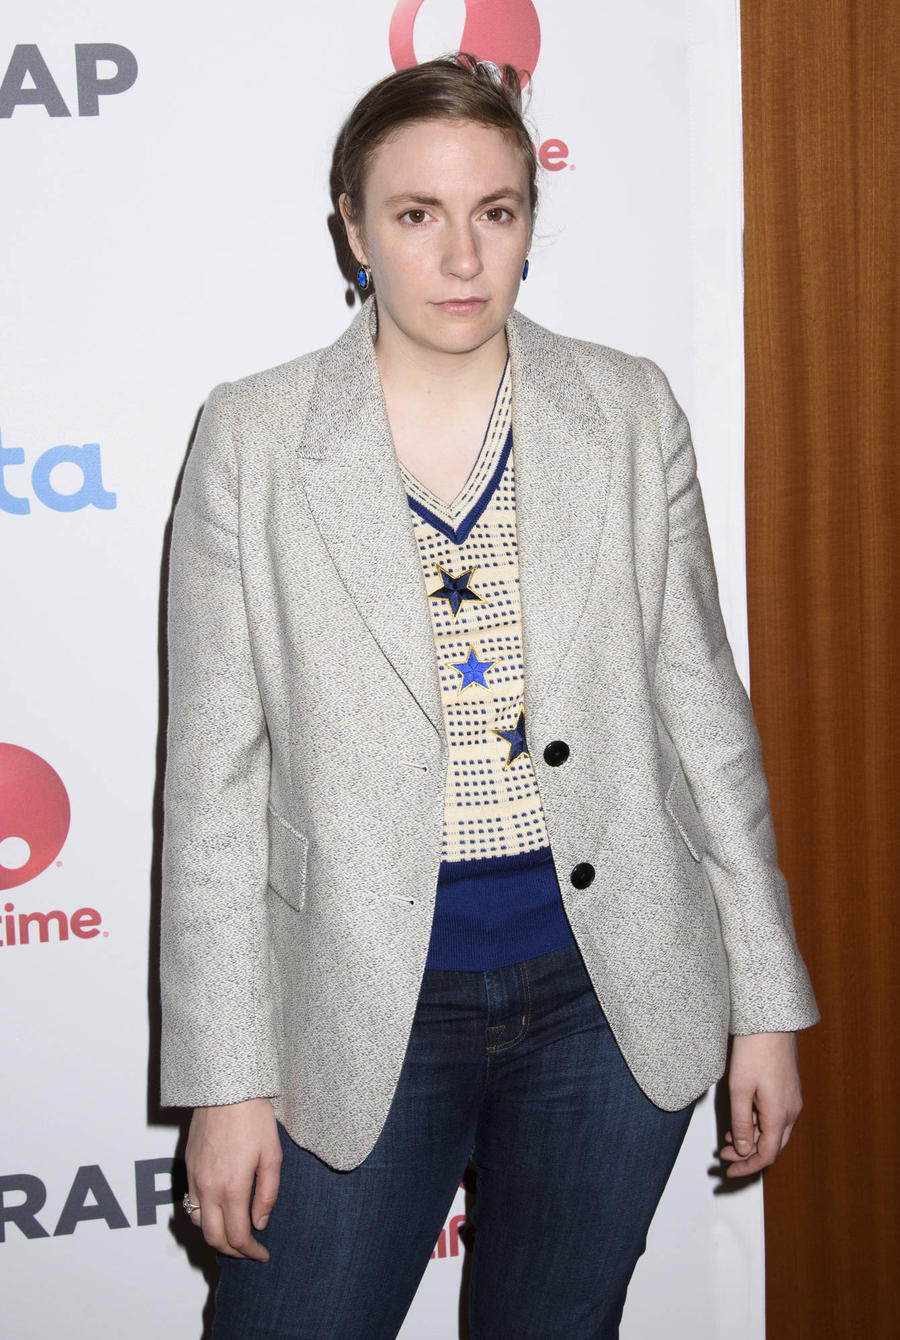 Lena Dunham Suffered With Hives After Trump's Election Victory